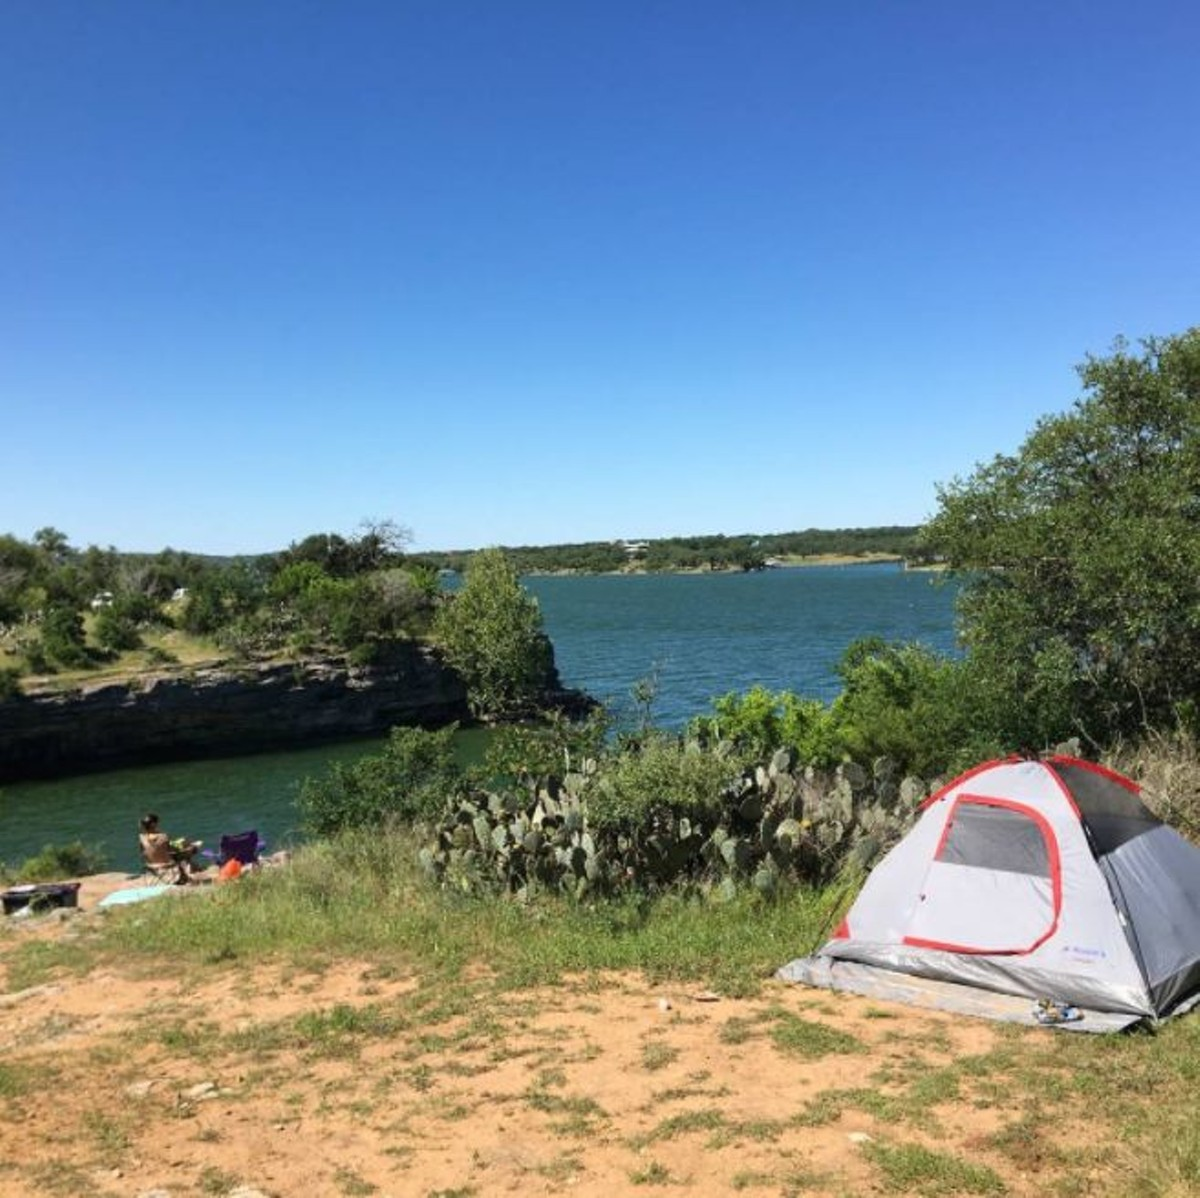 Only Two Hours Away From San Antonio Pace Bend Park Is A Solid Place For Camping Out Near The Water Without Being Too Far Home